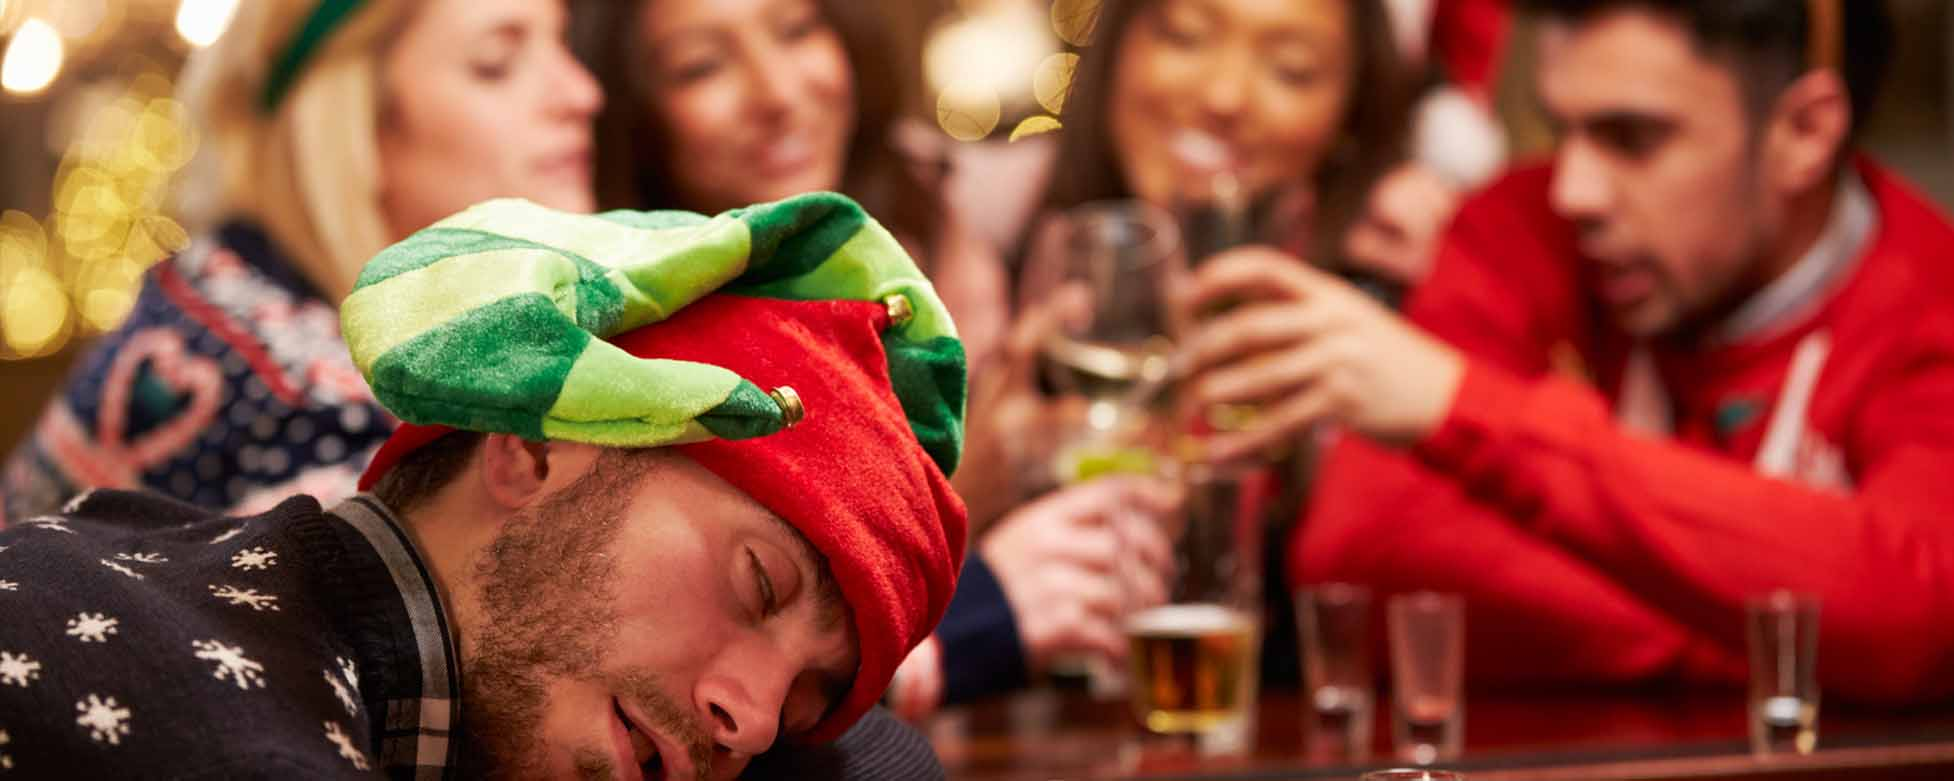 drunk christmas party - Drunk Christmas